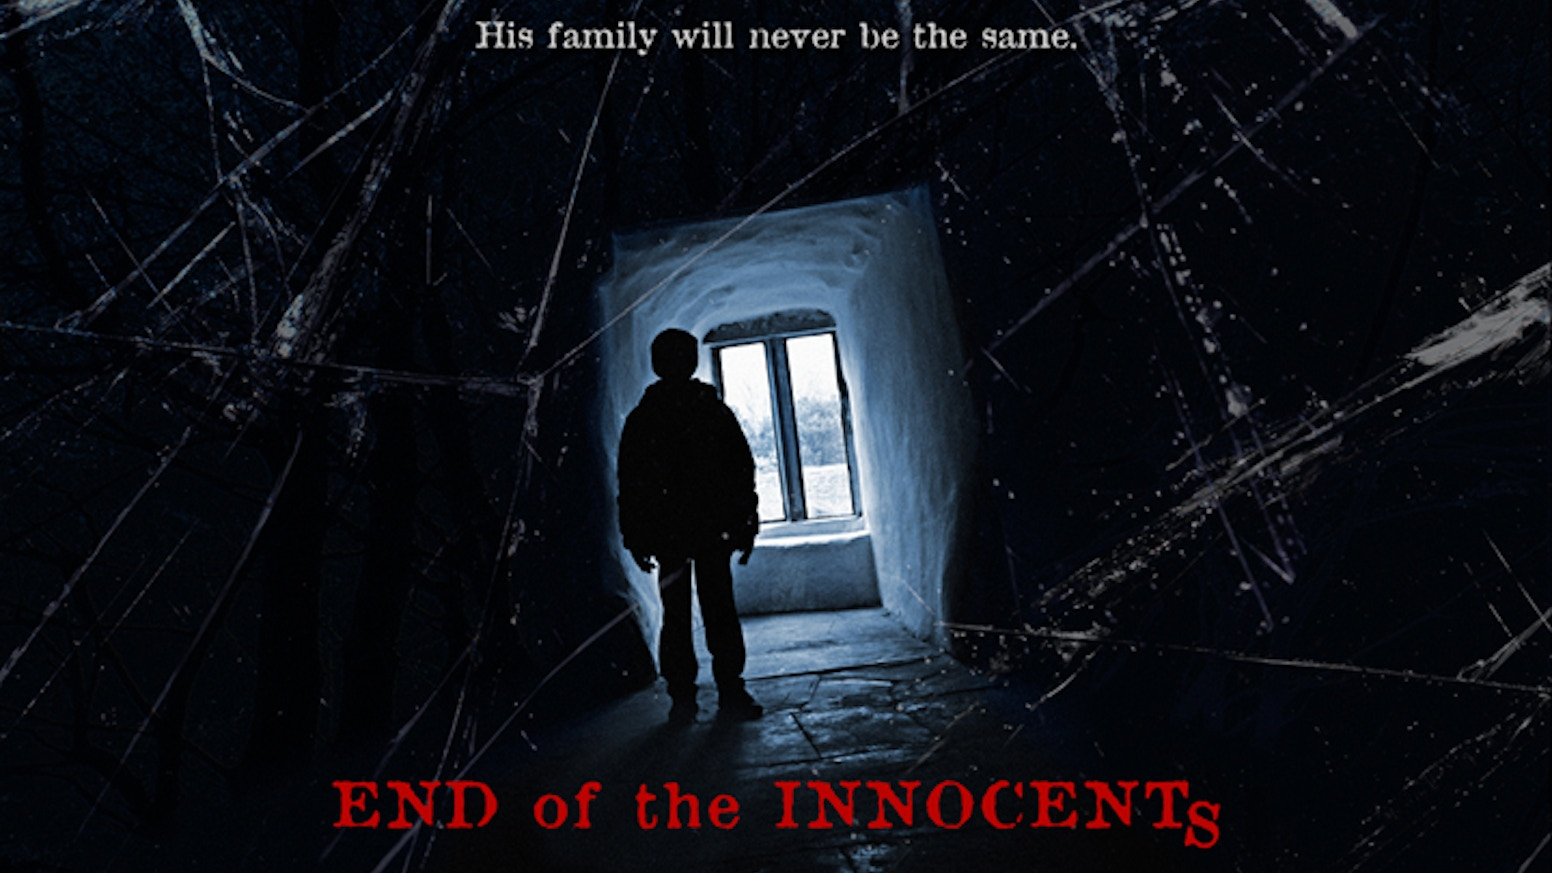 End of the Innocents - Narrative Short by Chesher Cat » New Joe